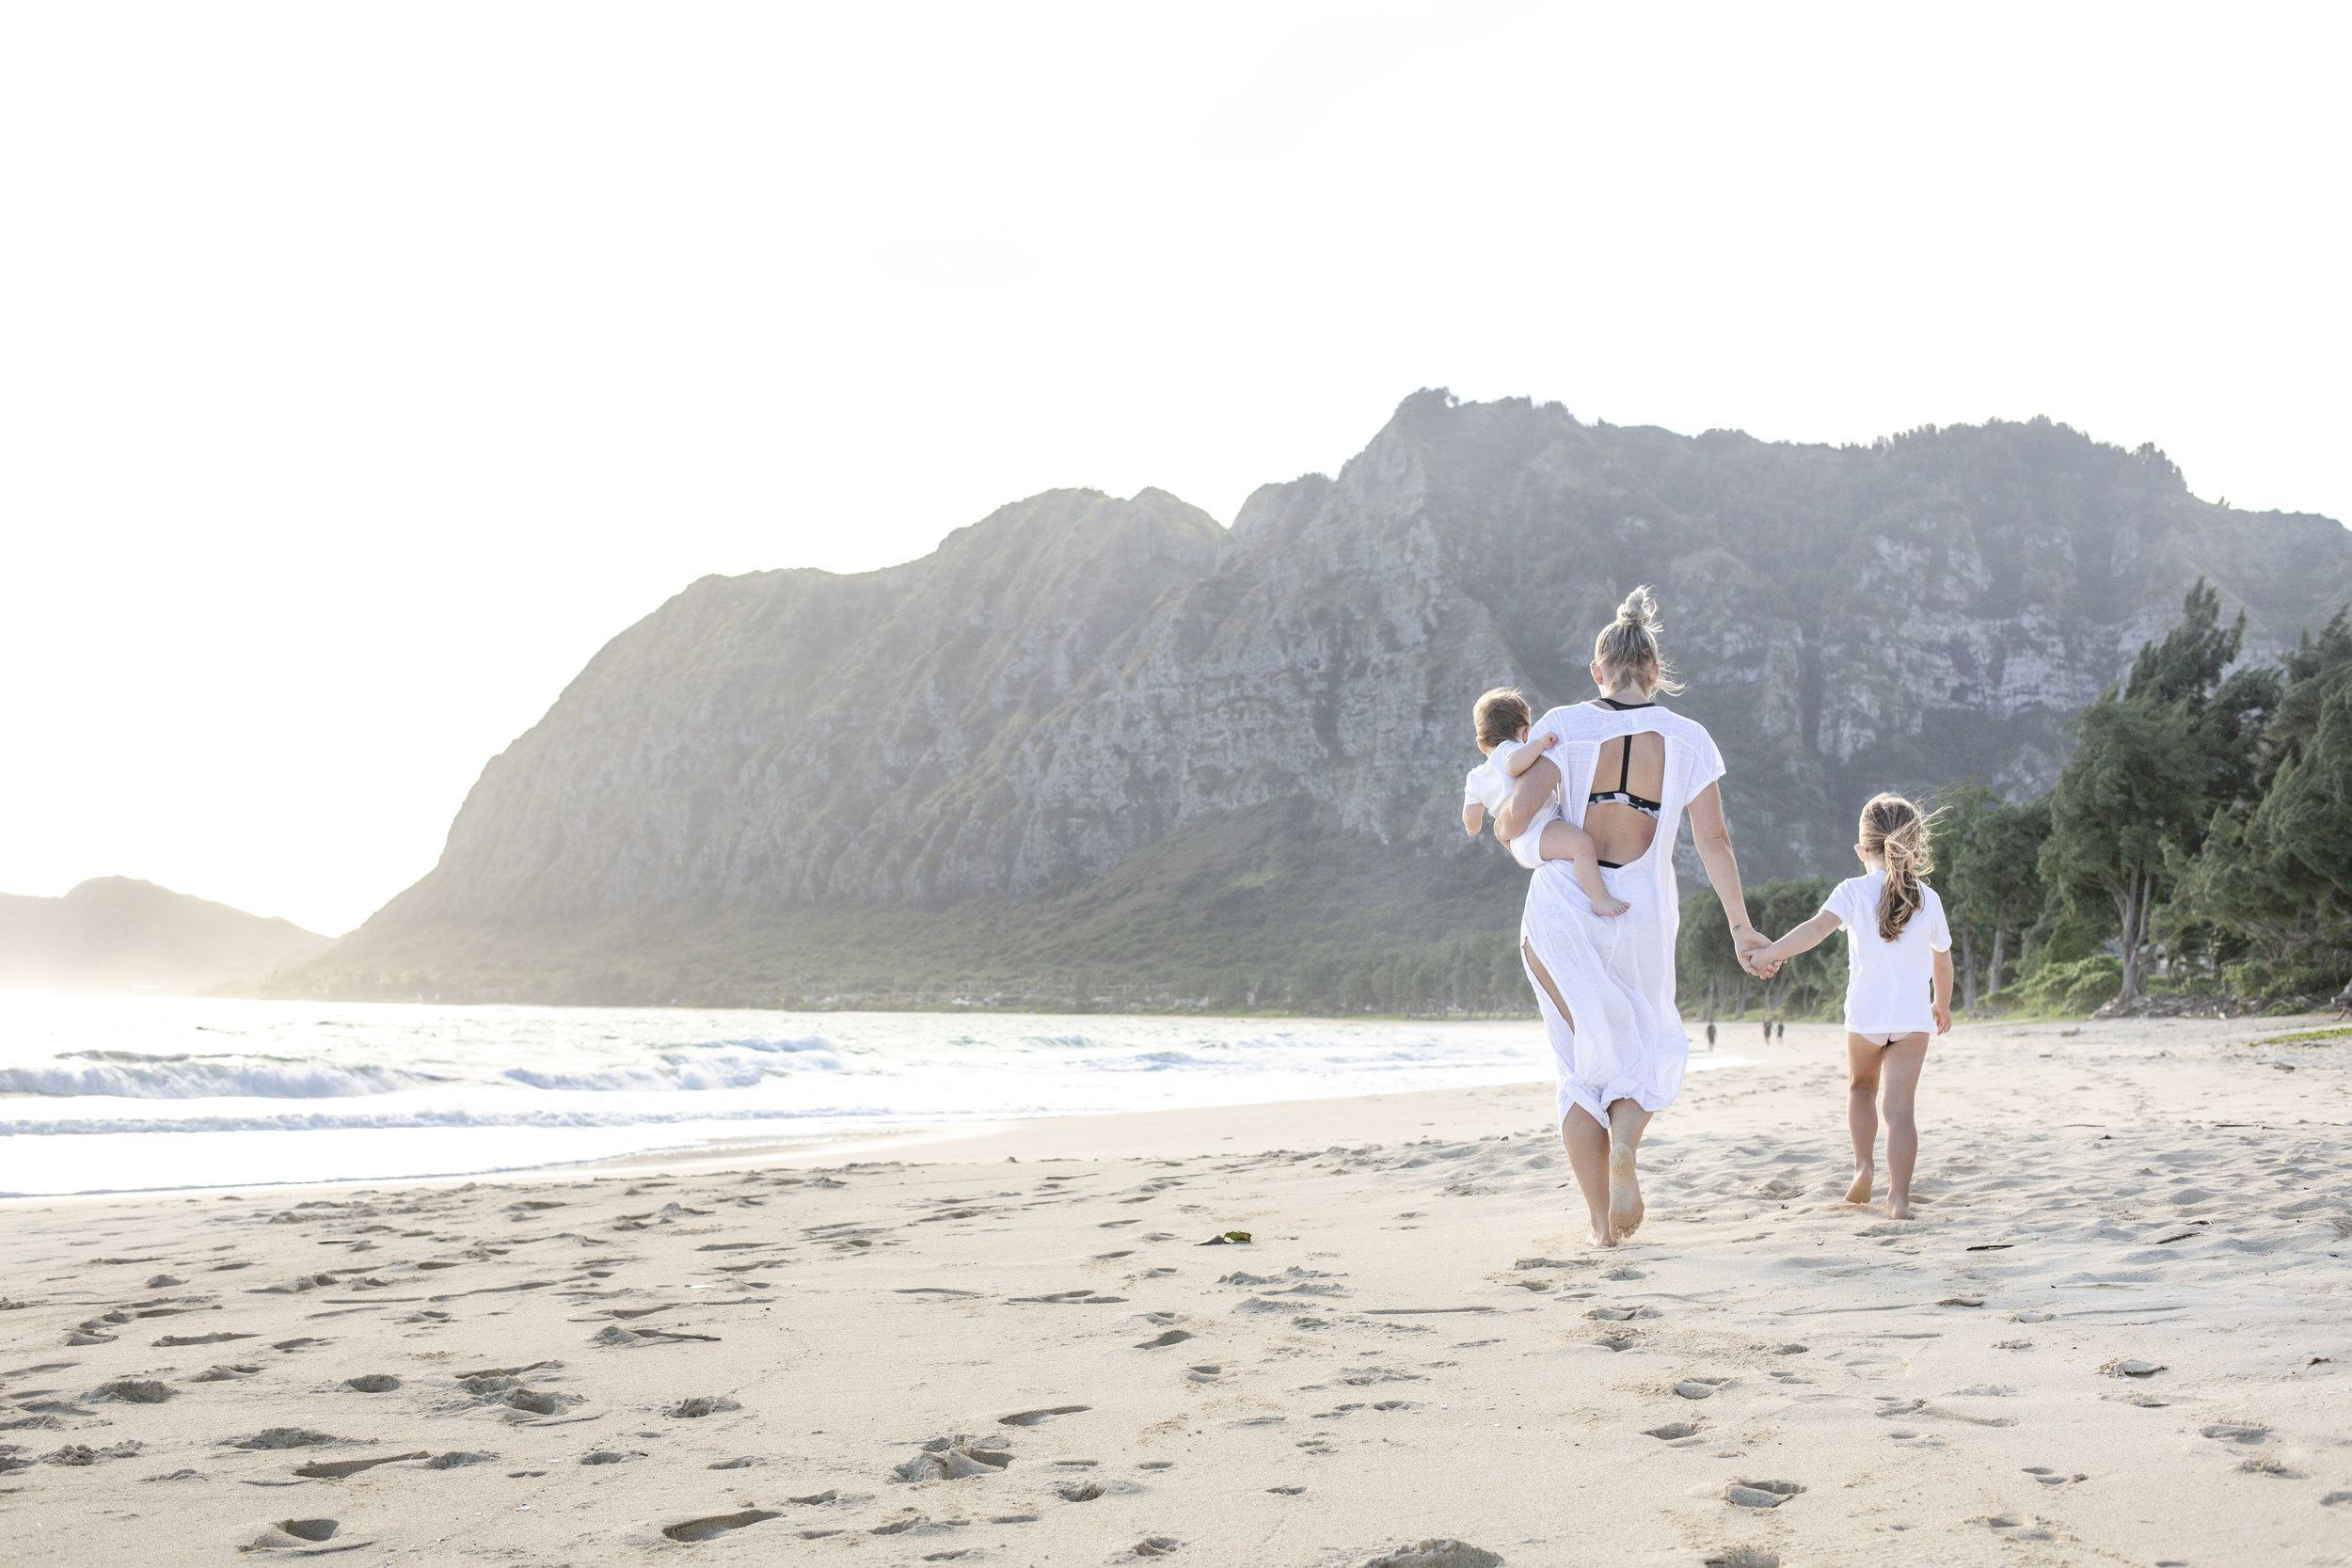 Travel Family travelmade easy - Hustle travel planning services and products will make traveling with kids seamless!